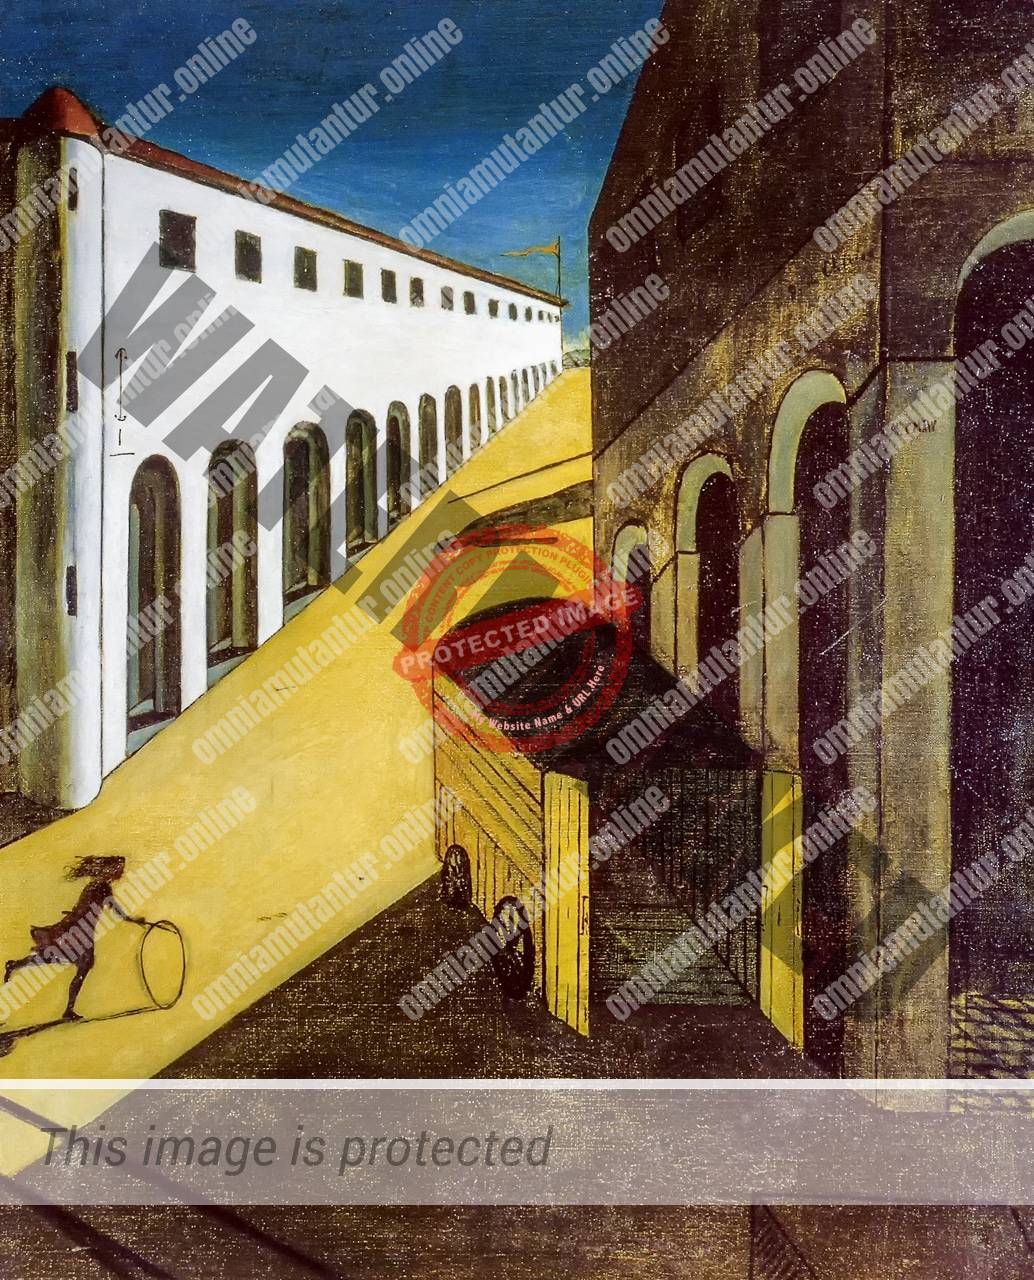 Chirico Melancholy and Mystery of a Street 1914 Art Surrealism